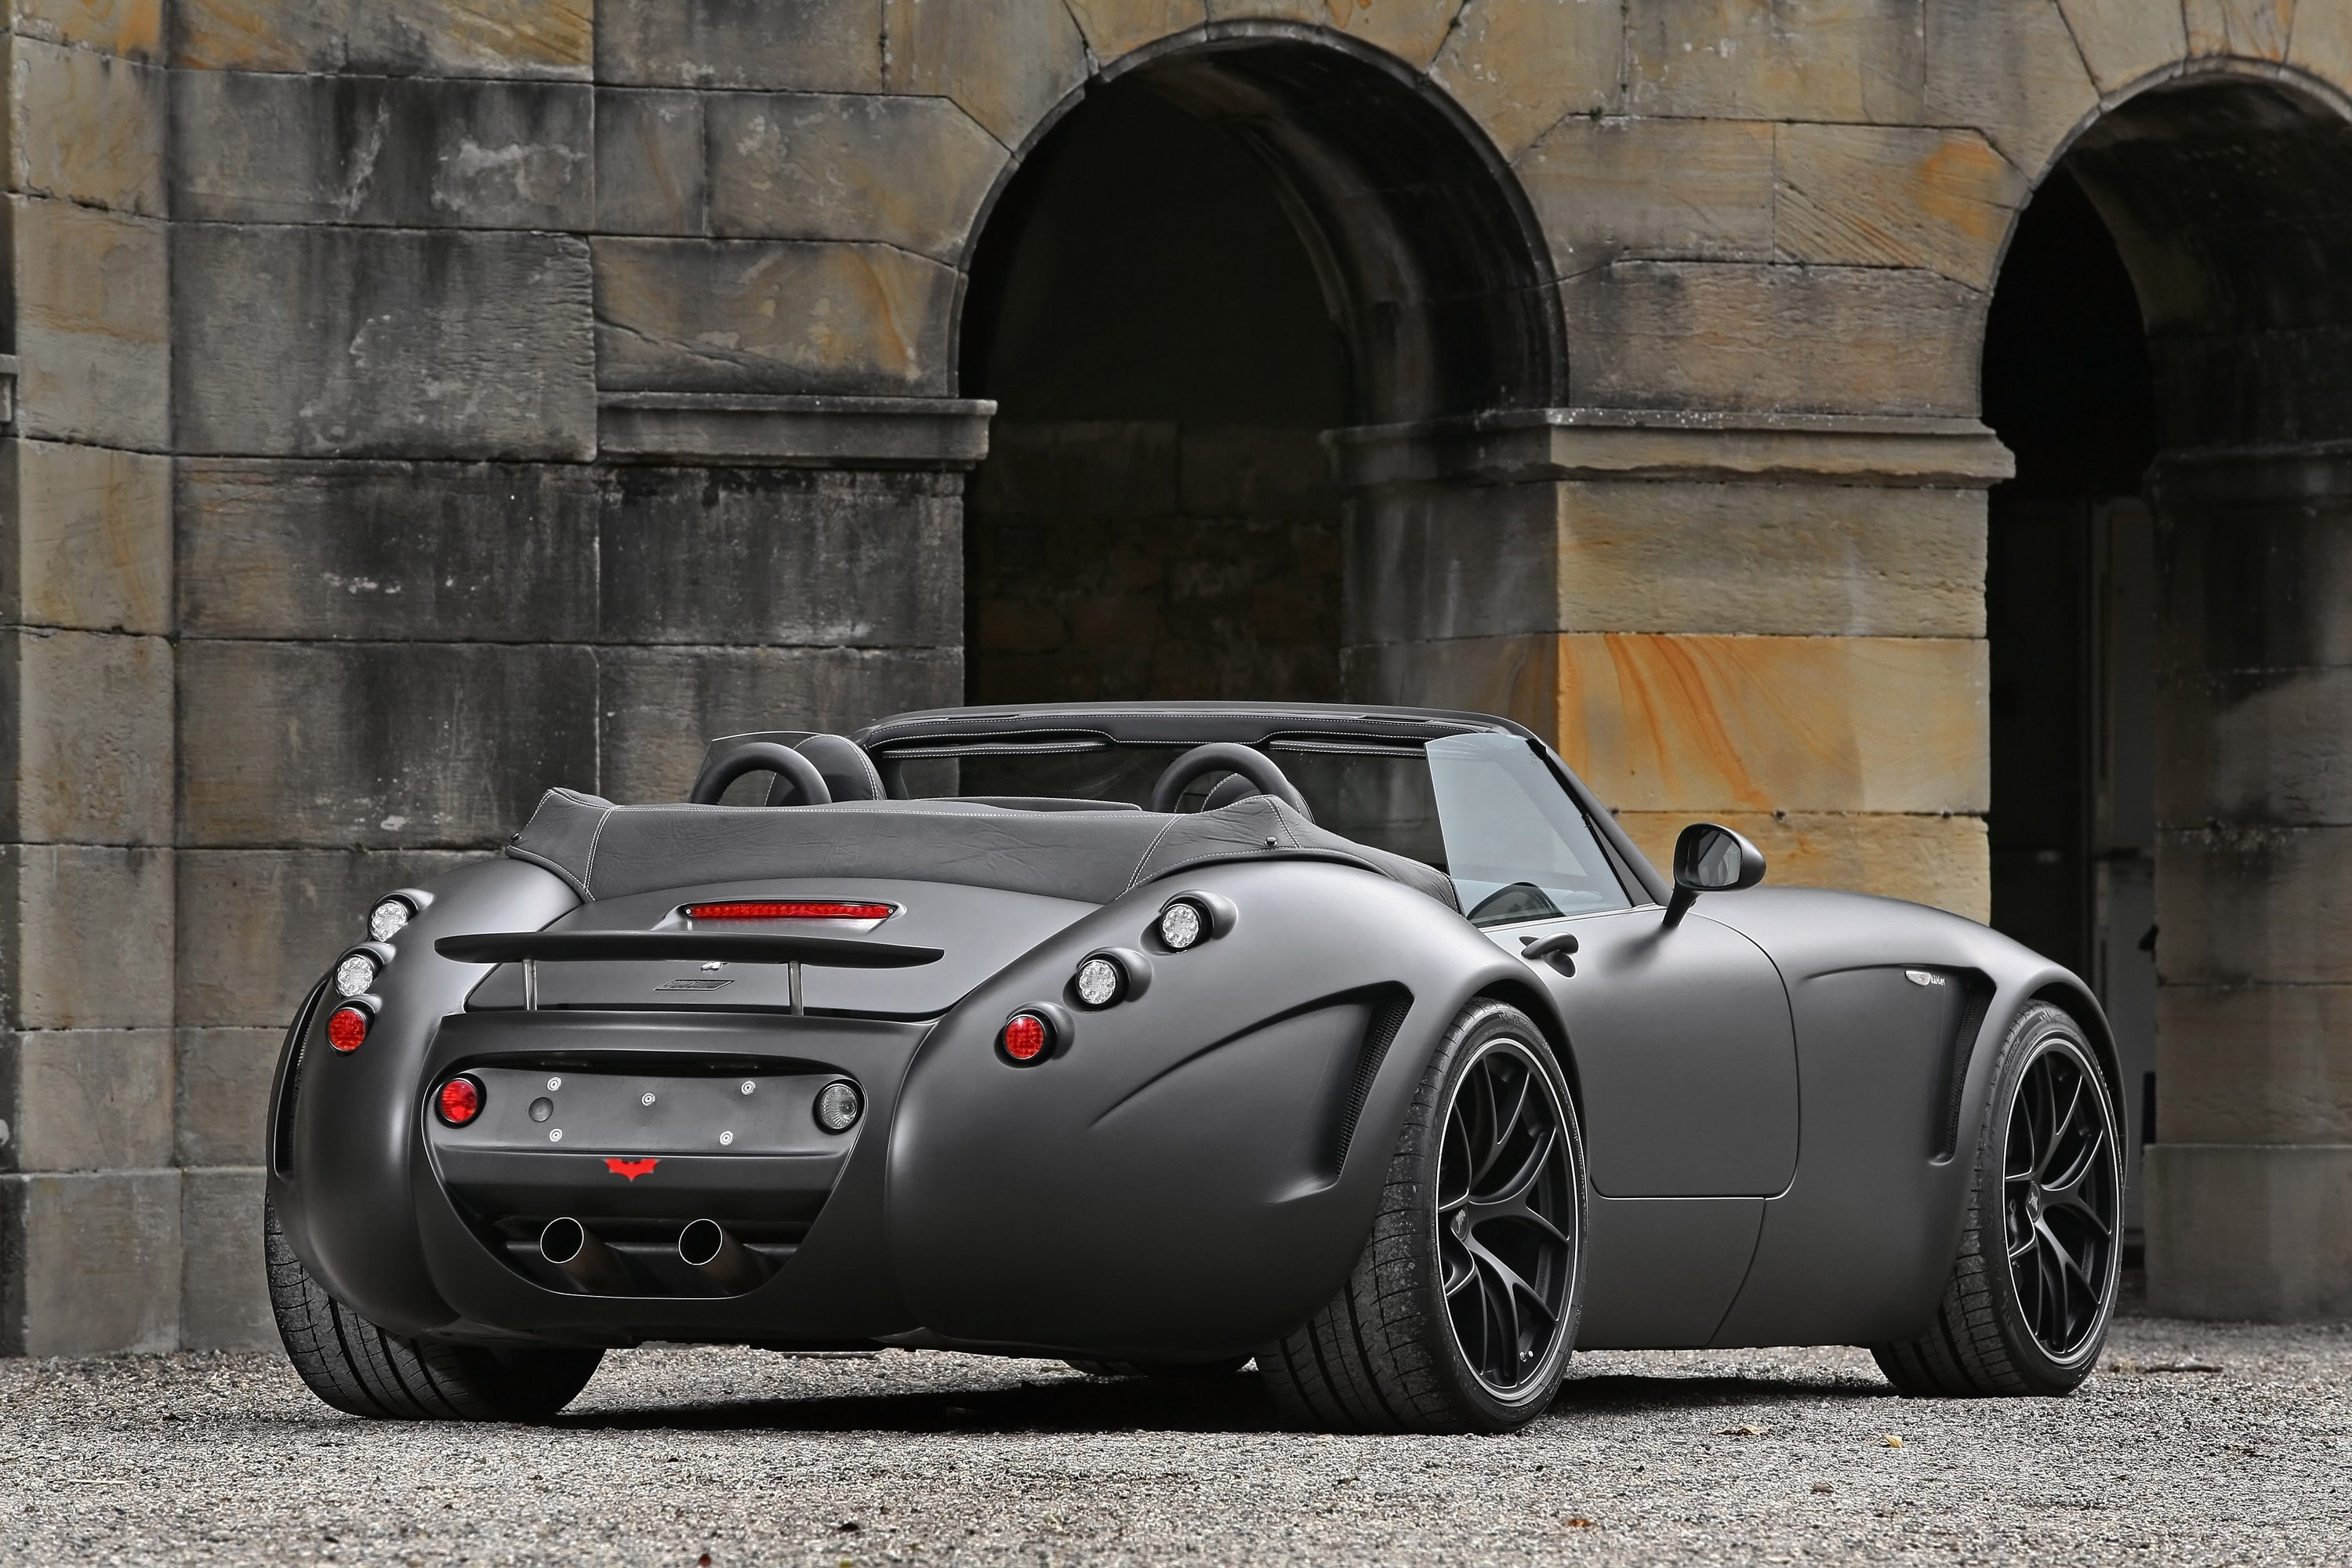 3000x2000 - Wiesmann GT MF5 Wallpapers 30